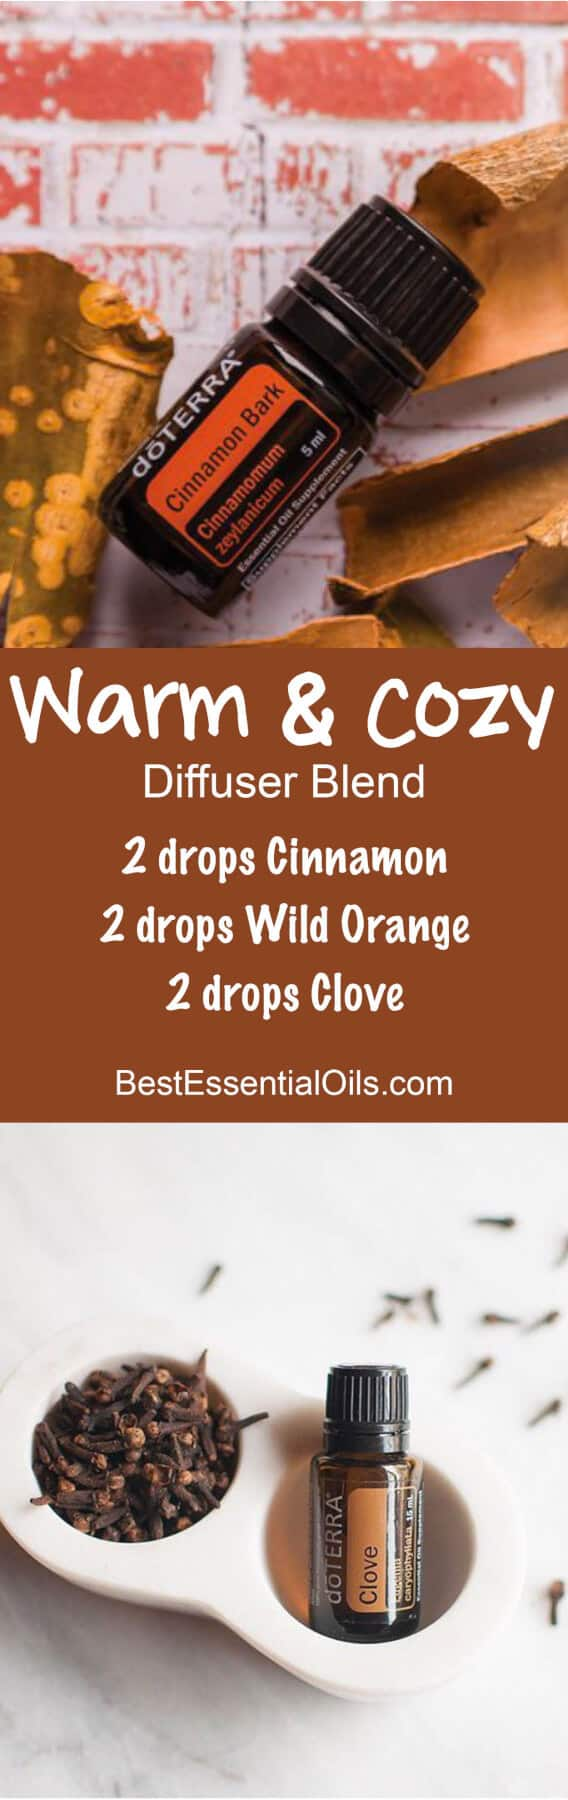 Warm & Cozy doTERRA Diffuser Blend